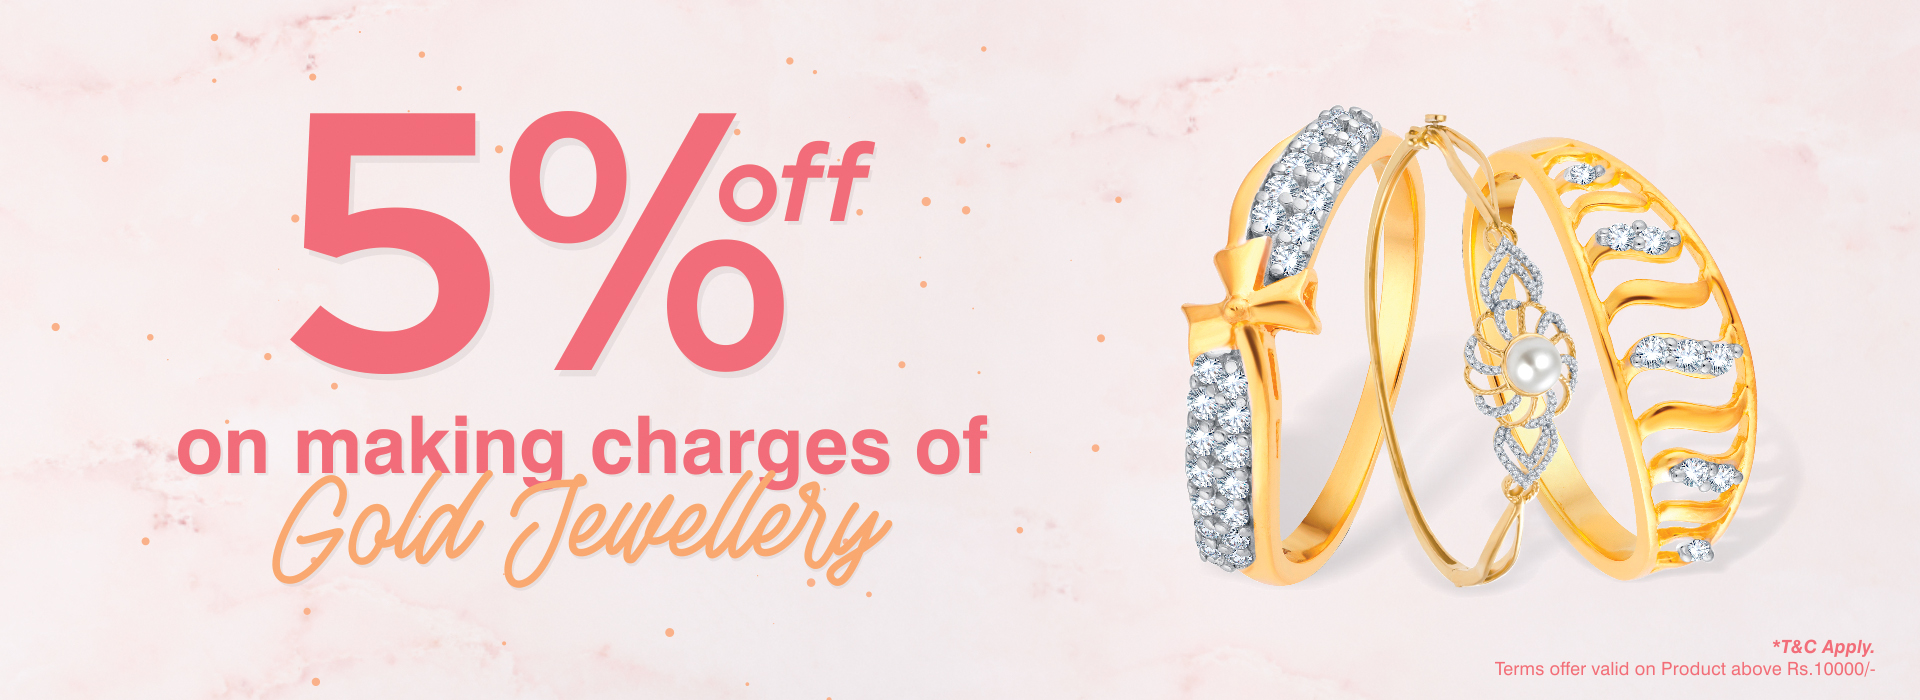 5% off on making charges of Gold Jewellery